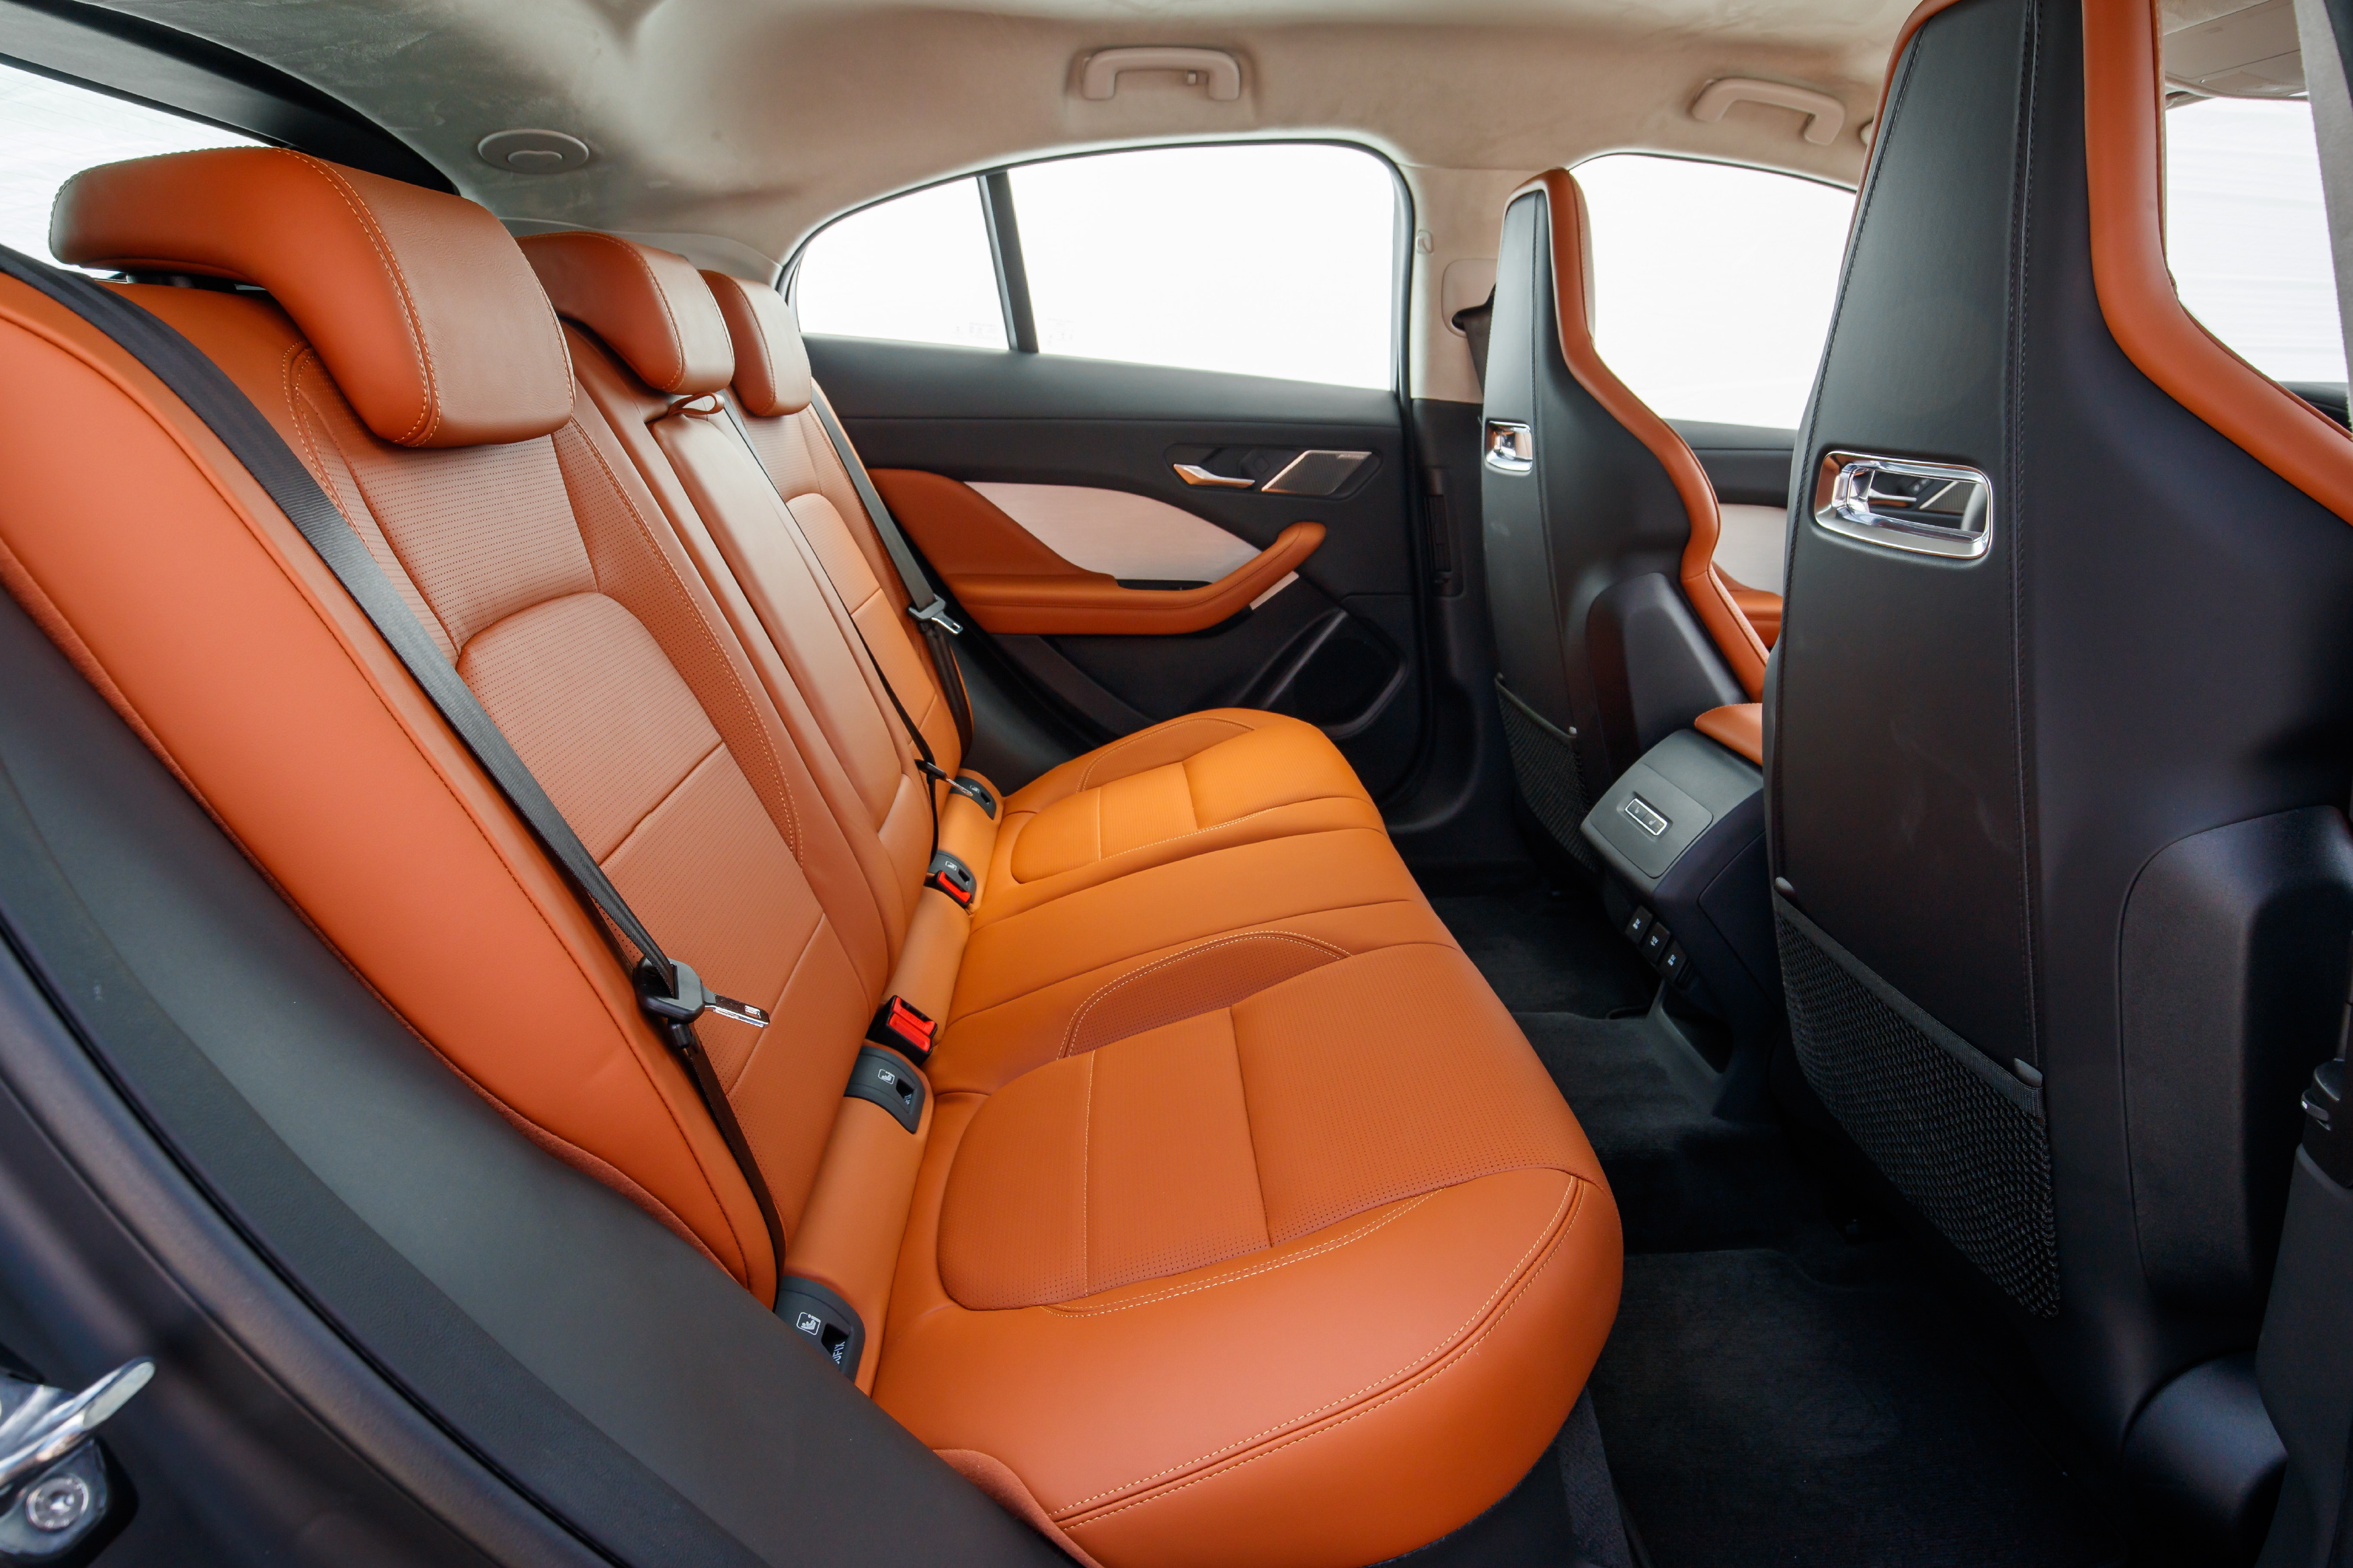 Jaguar I-PACE rear seats